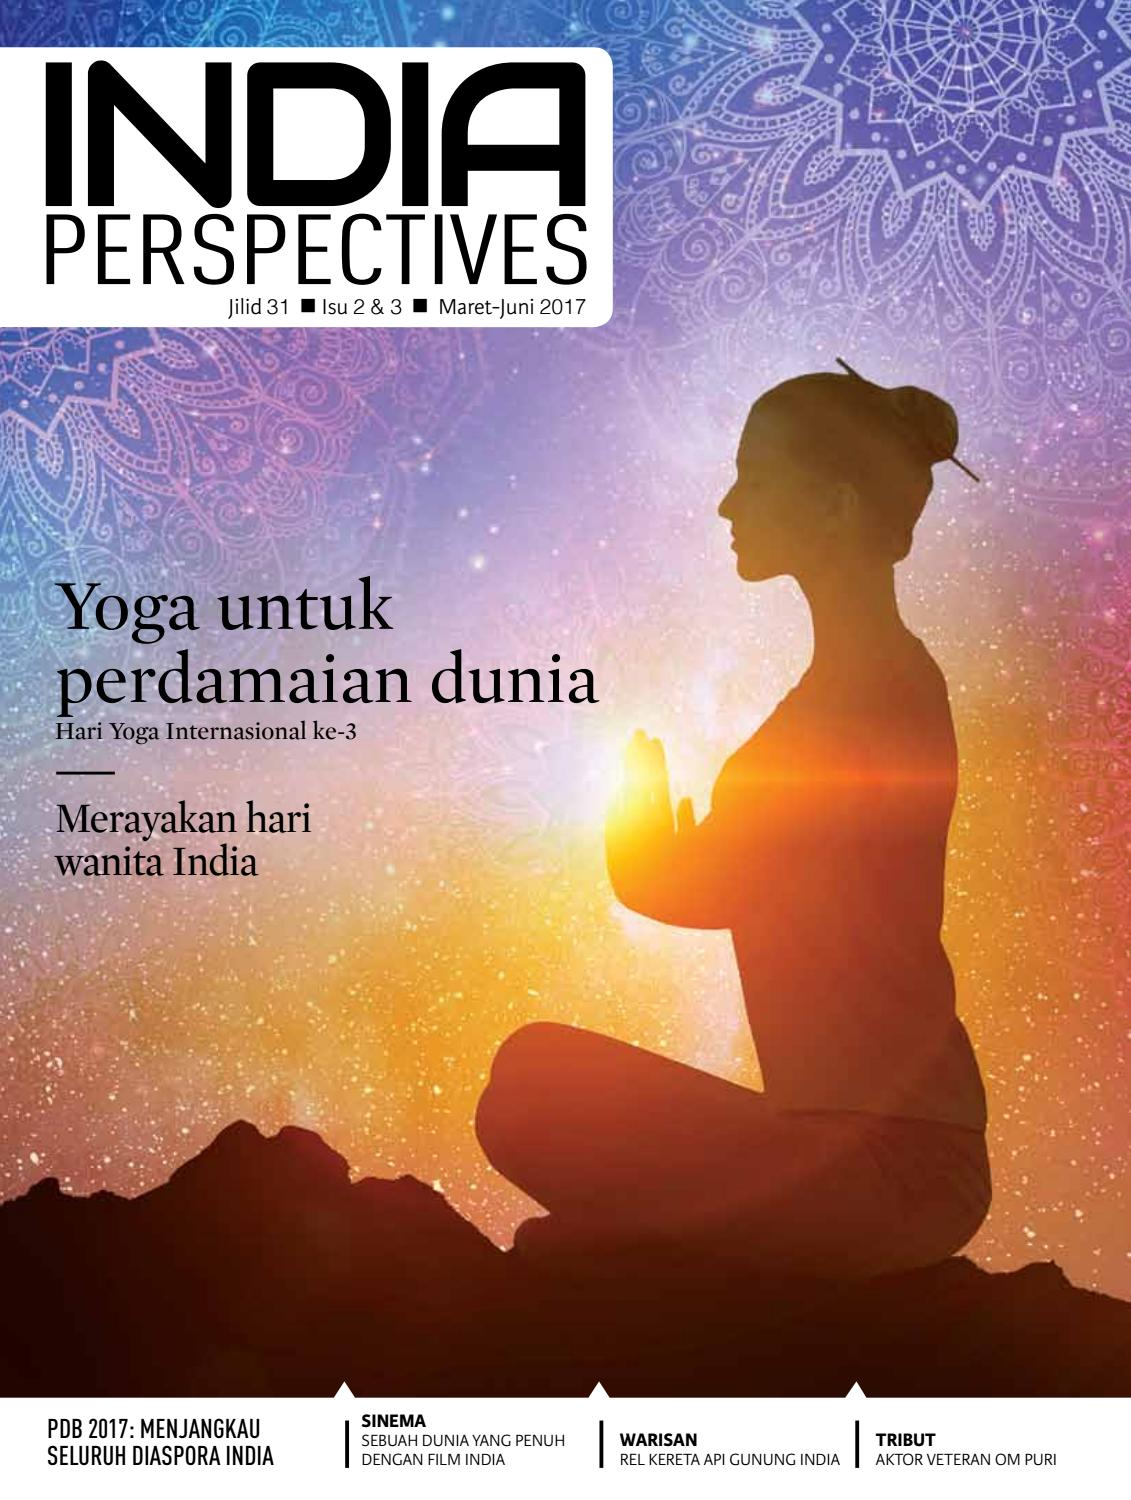 India Perspectives Indonesian March June 2017 By Indian